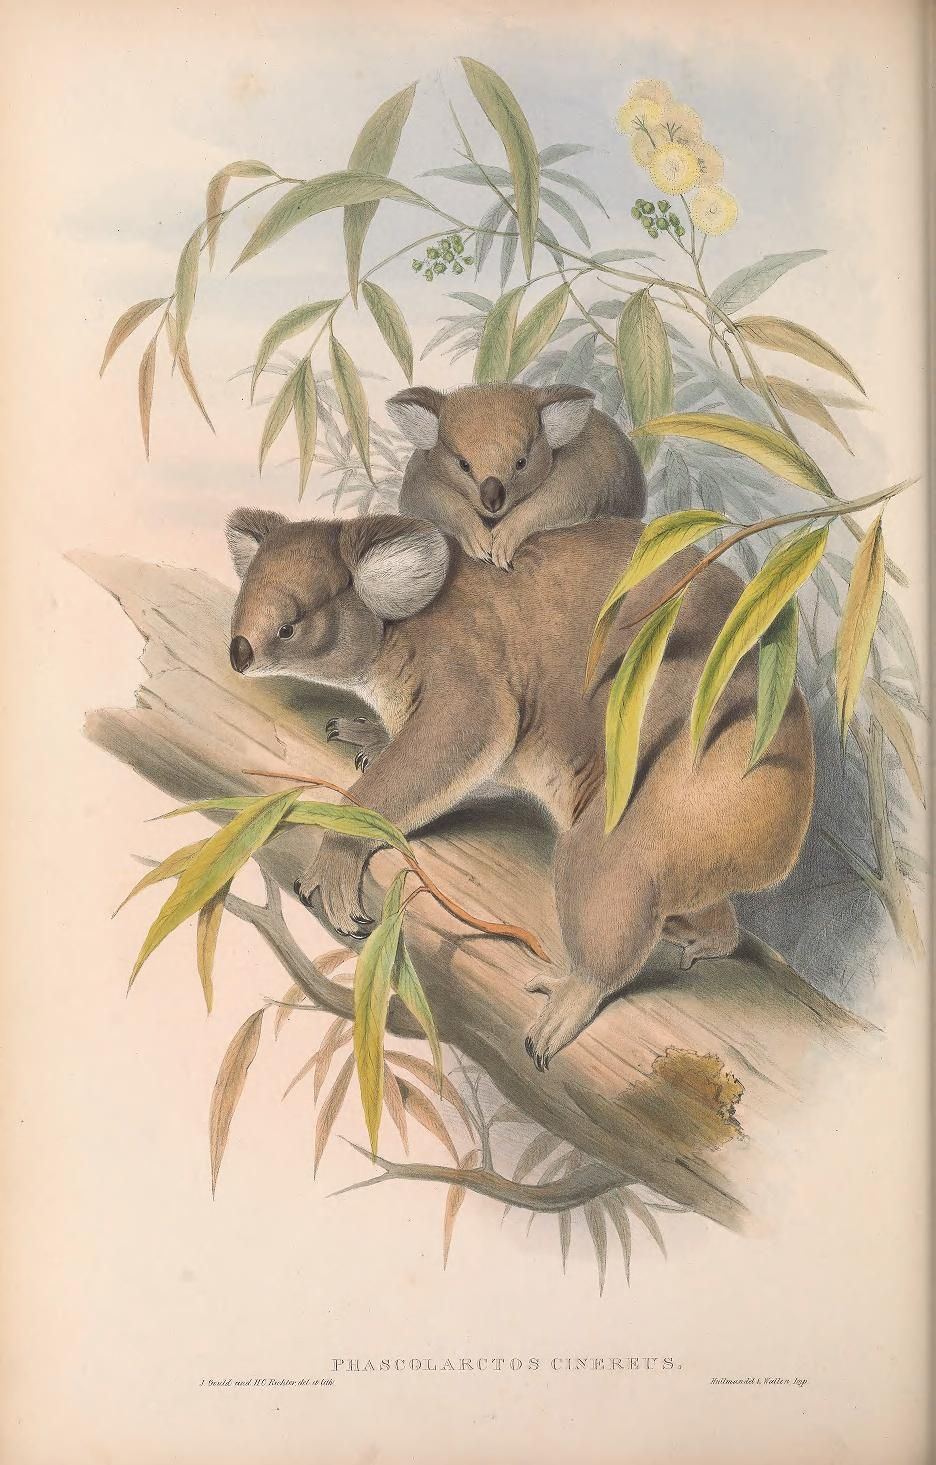 V 1 1863 The Mammals Of Australia Biodiversity Heritage Library Australia Animals Mammals Animals